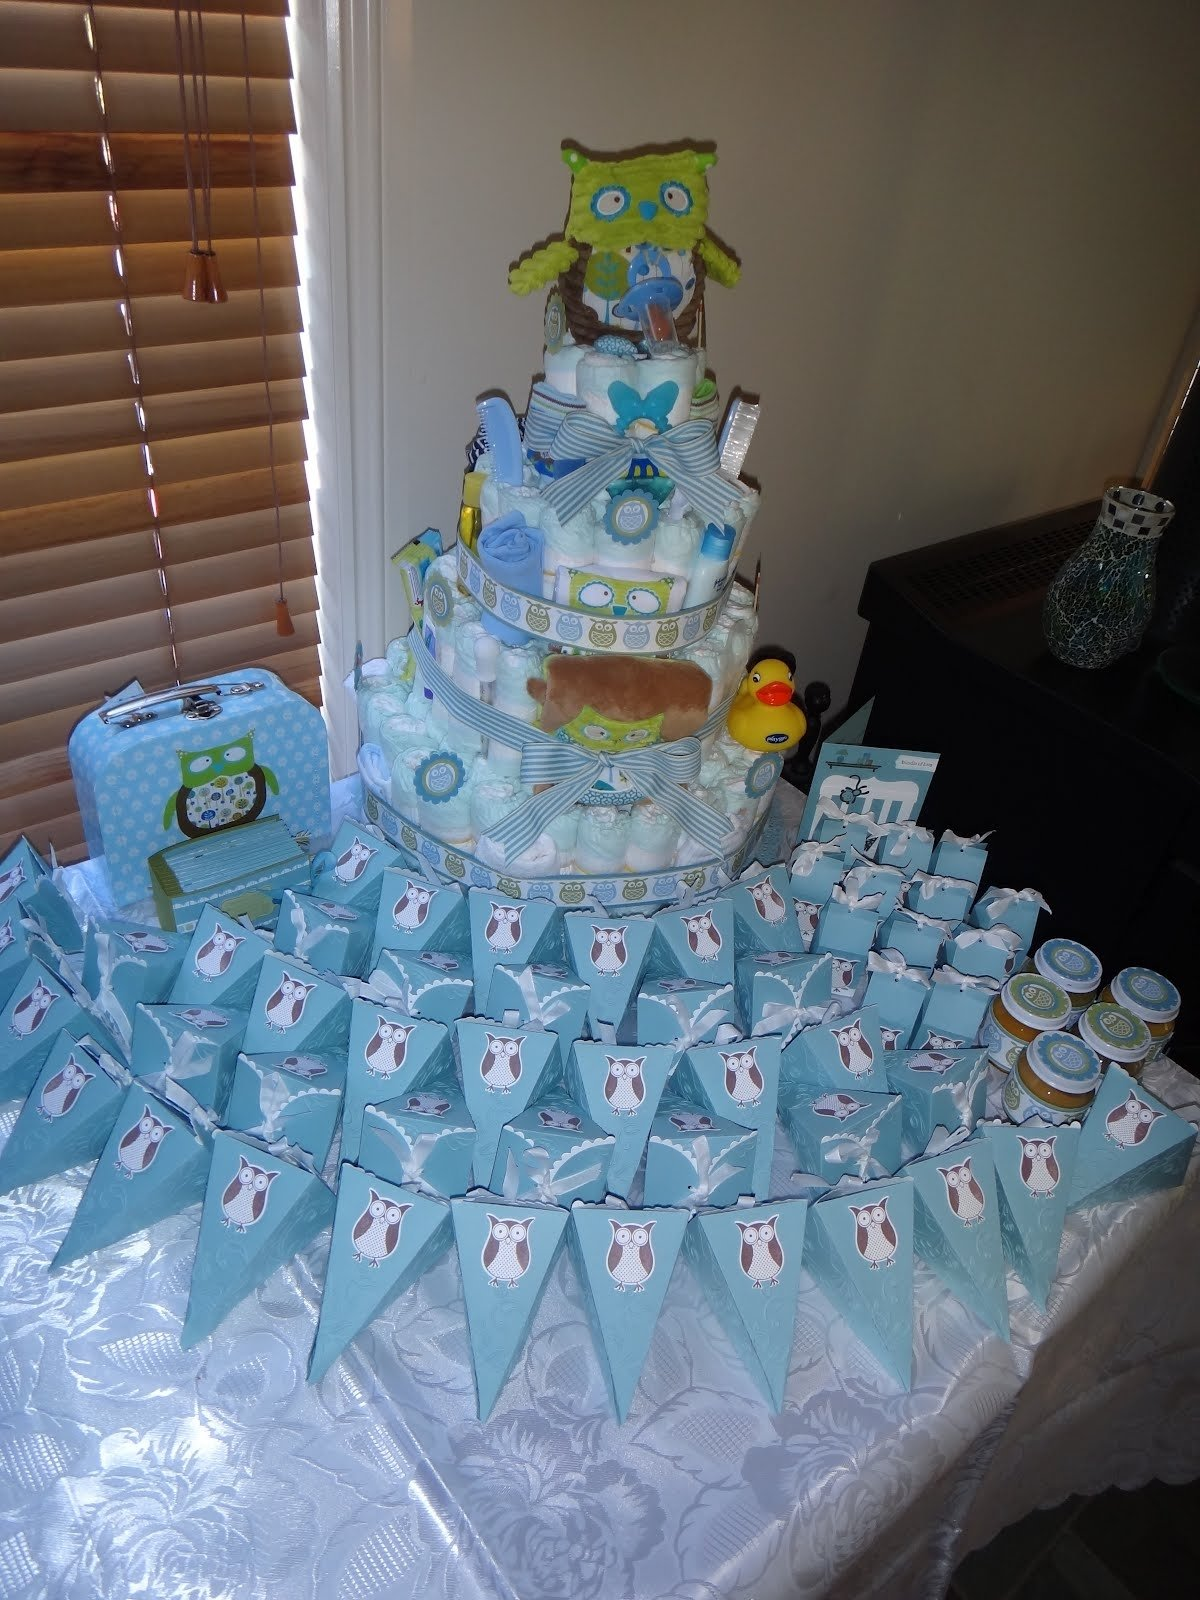 10 Wonderful Cheap Baby Shower Ideas For Boys ideas wonderful baby shower favor for boy game idea cheap decoration